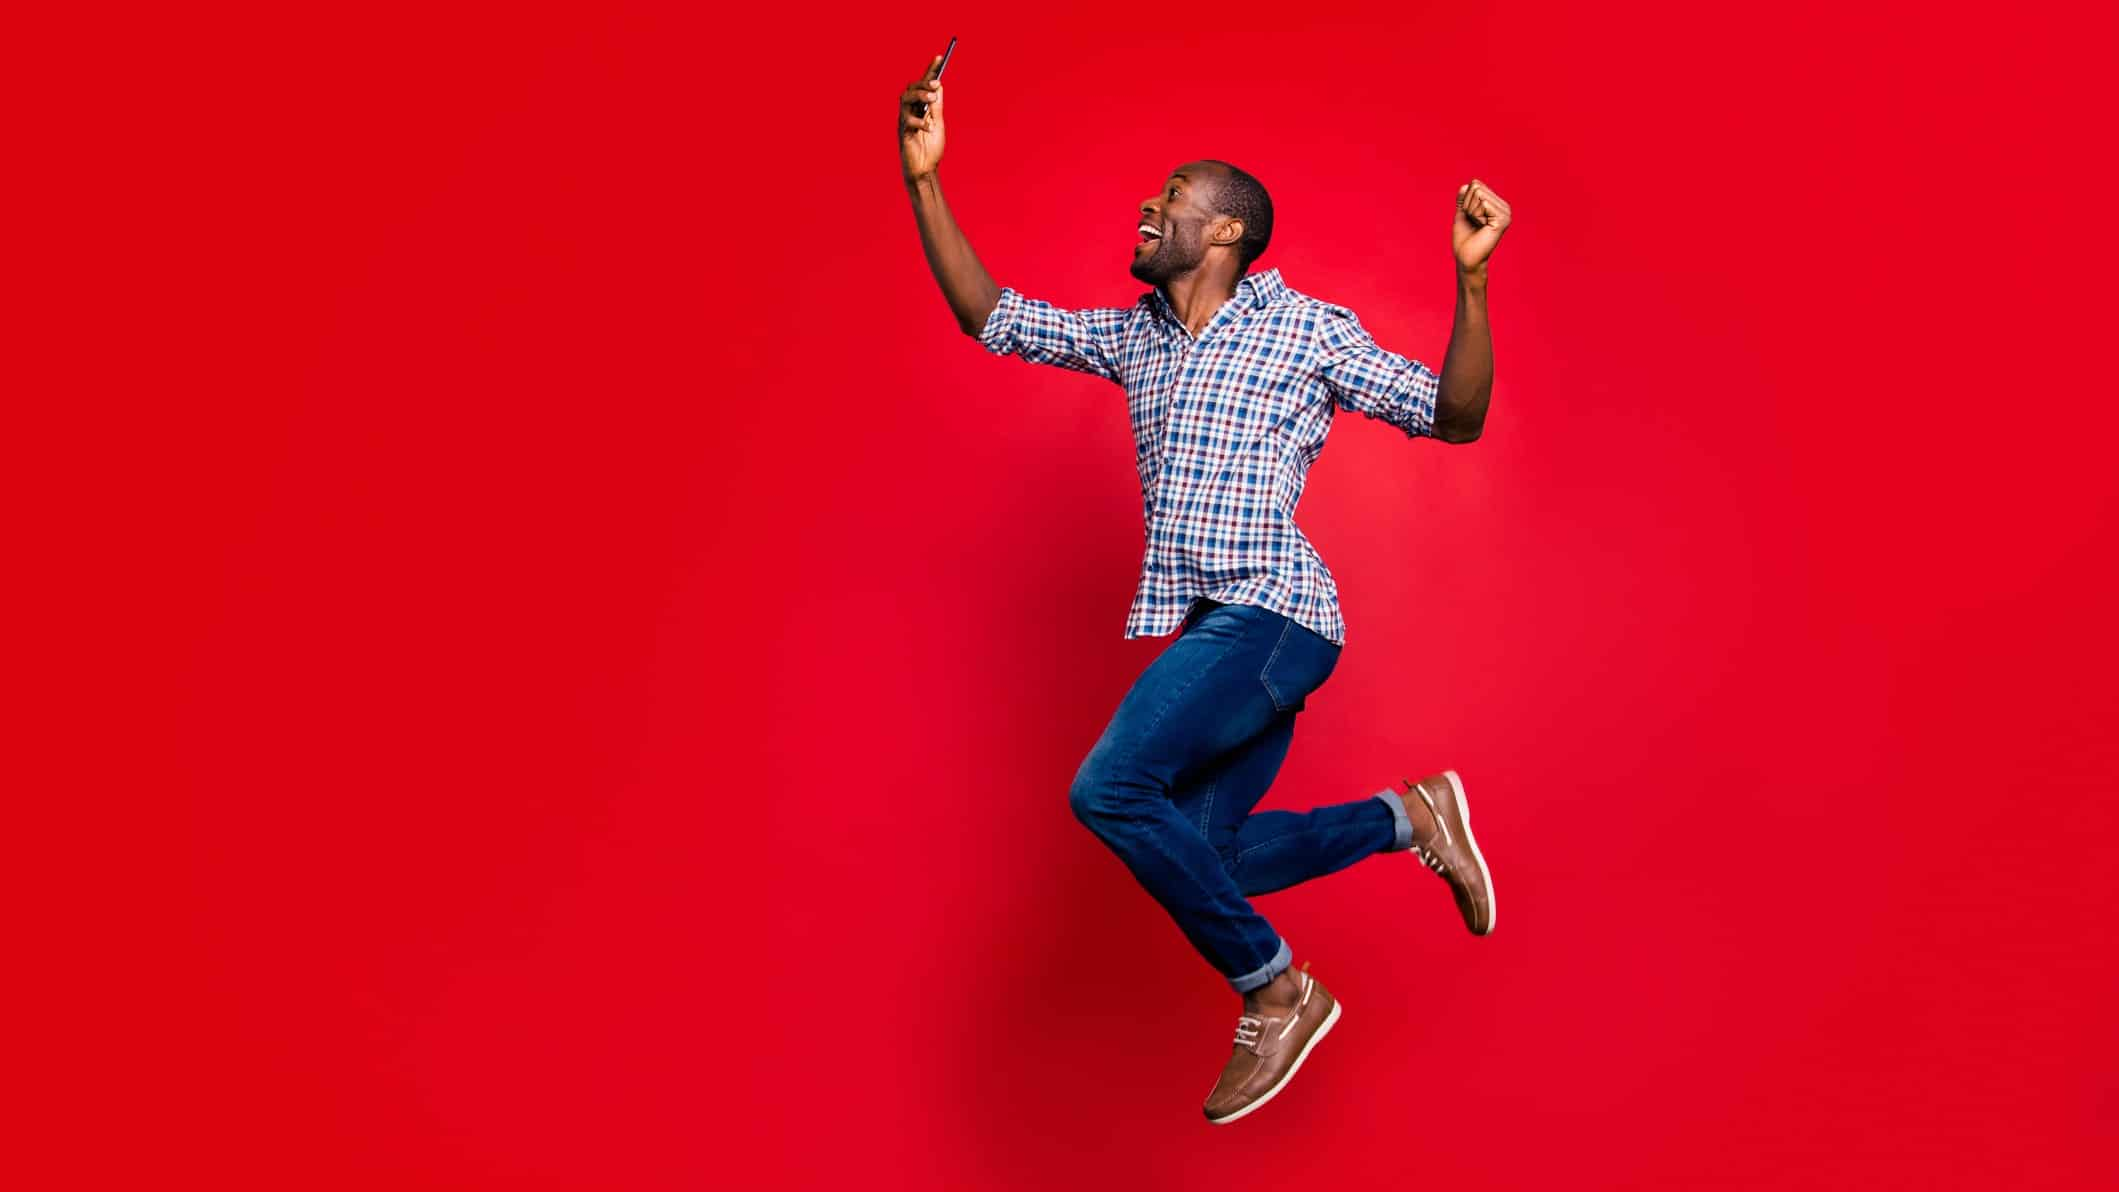 rising telstra share price represented by man jumping in the air for joy looking at mobile phone